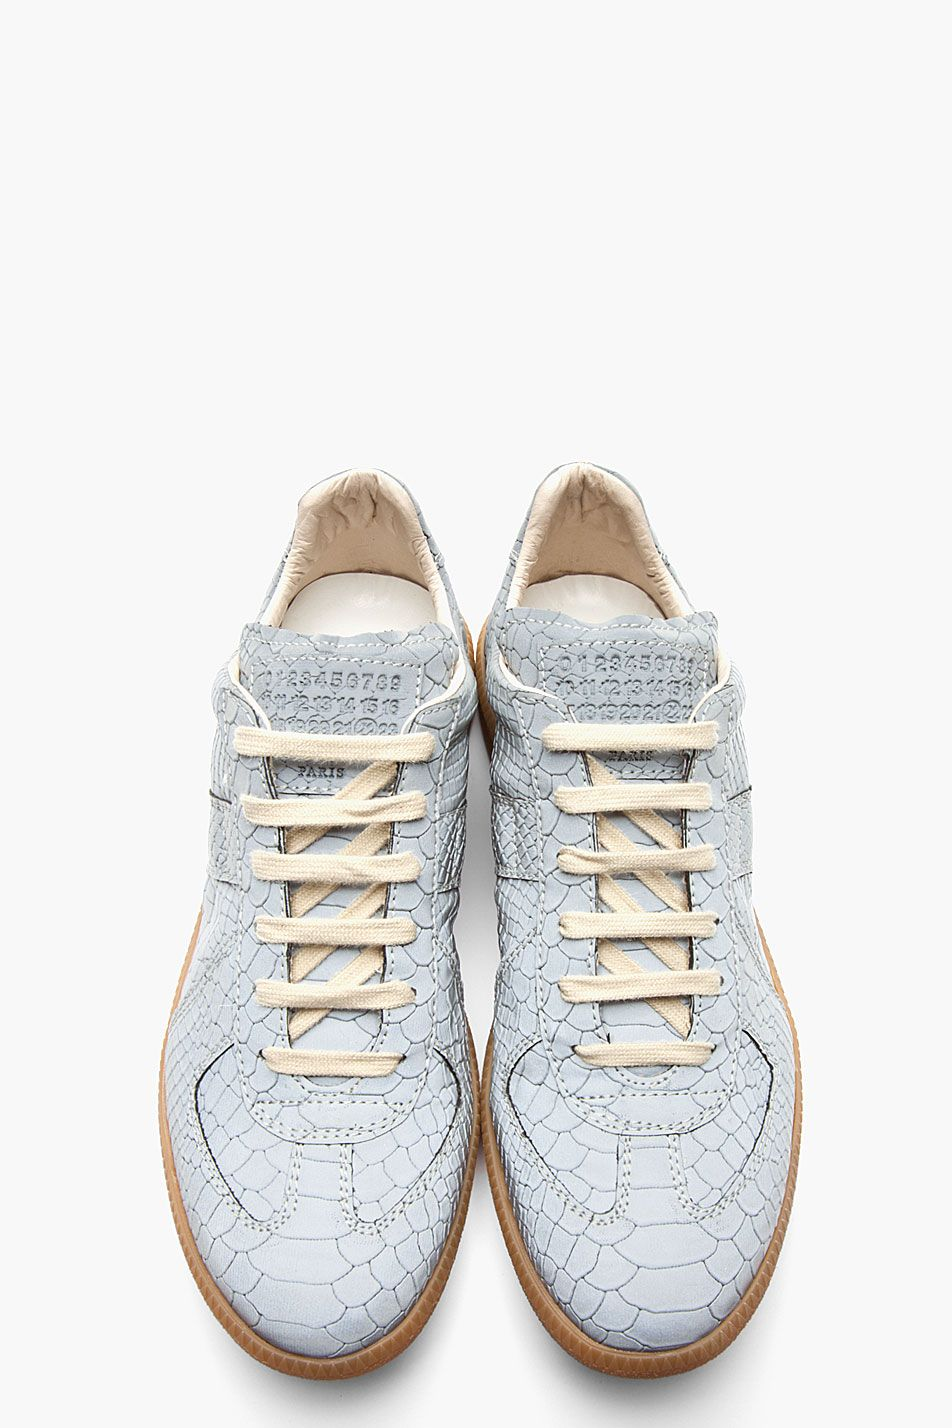 Glitter Cut-Out Replica Sneakers Maison Martin Margiela p6lBMgW5Pq